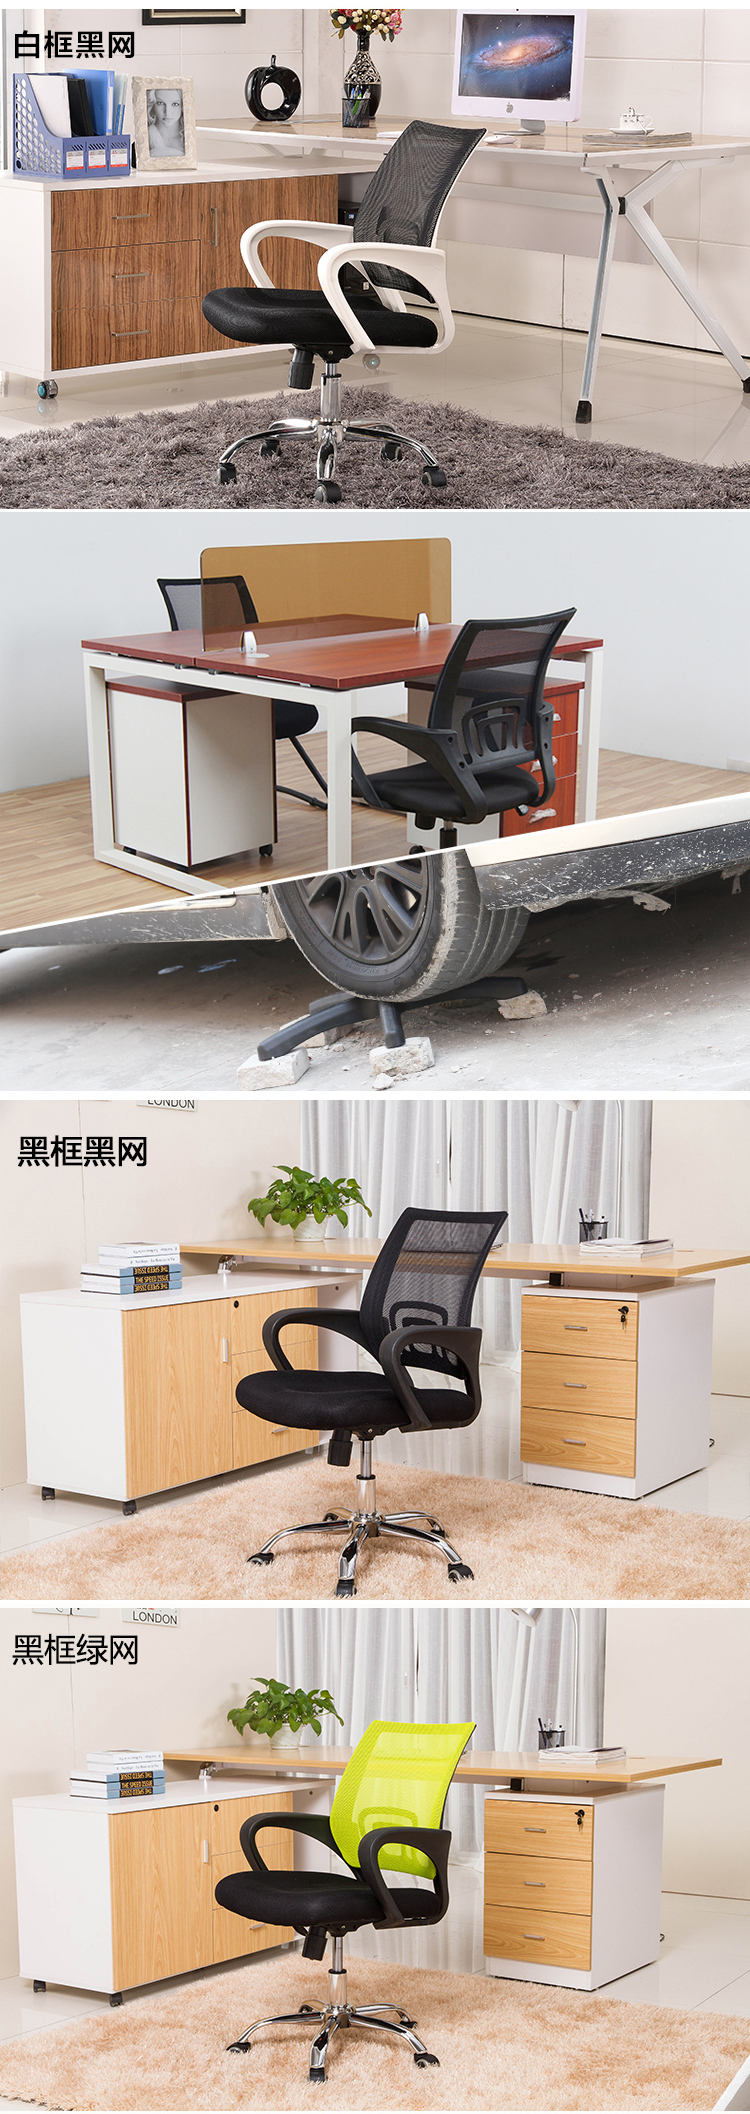 C12 Alibaba online shopping heated mesh conference chair, meeting chair, reception chair